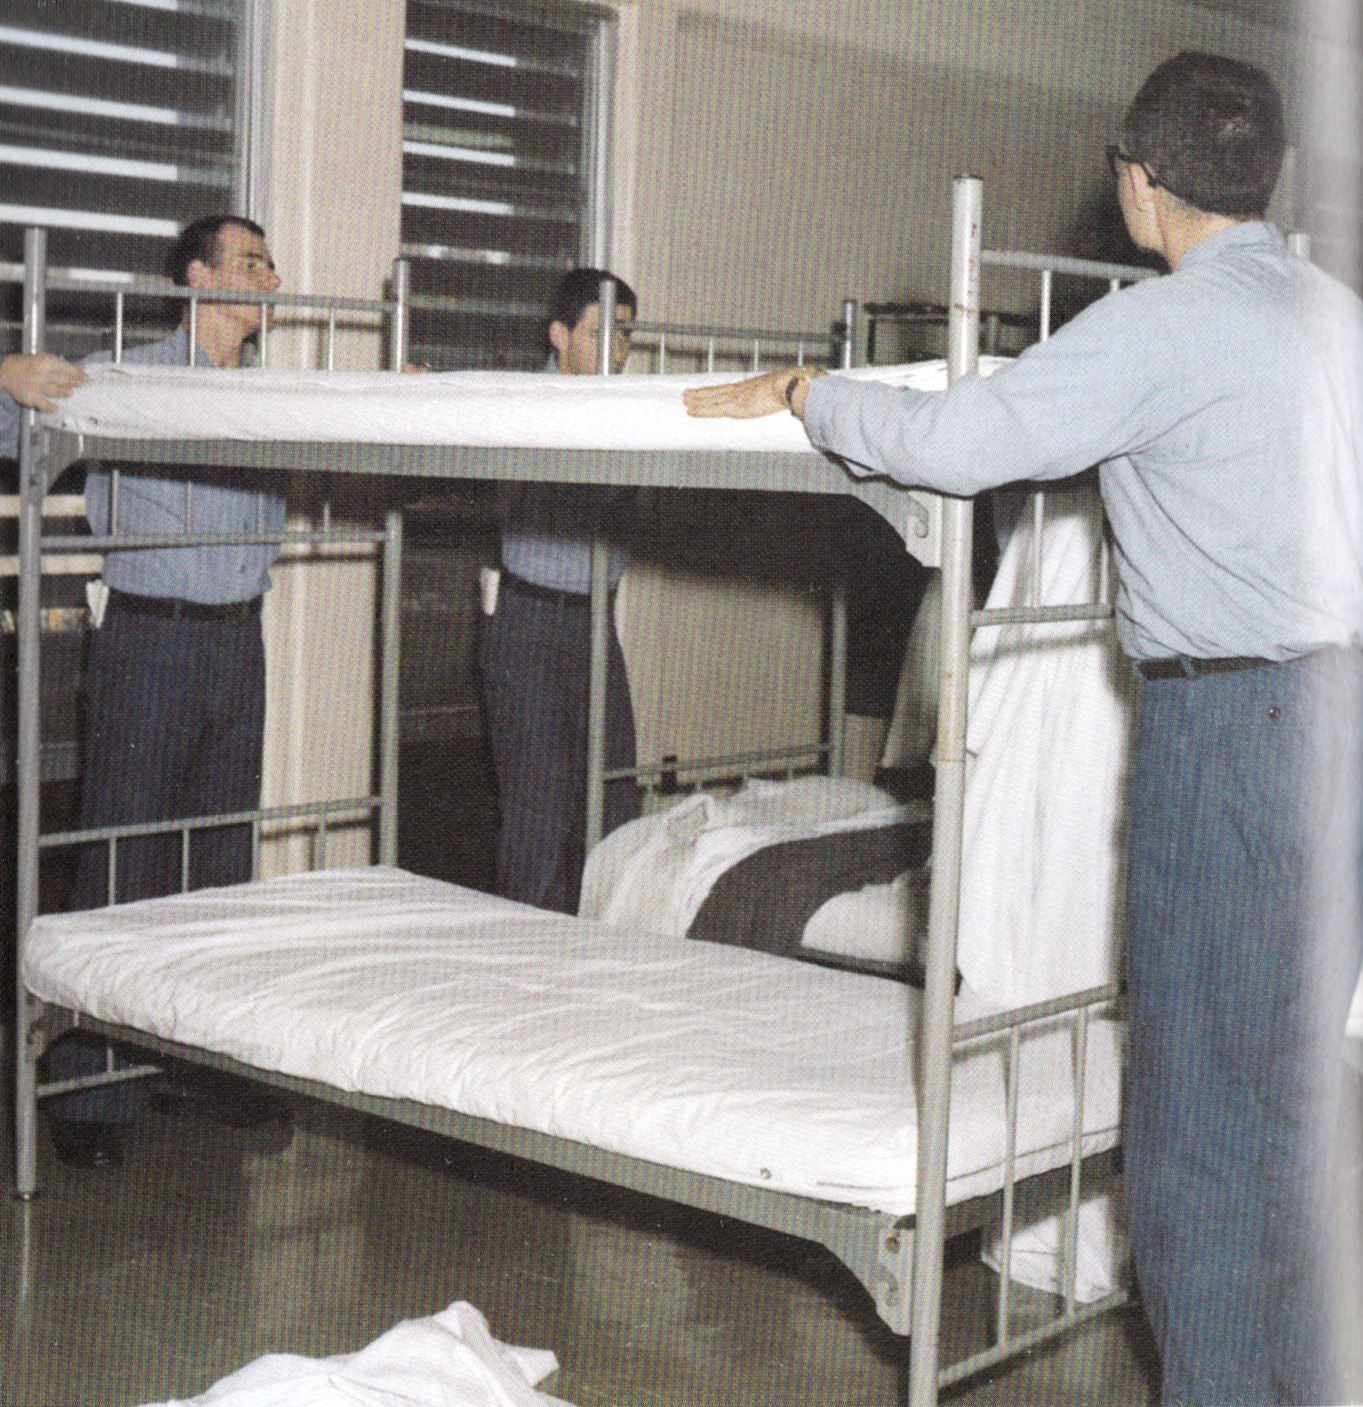 Tommy Mondello bunks in boot camp